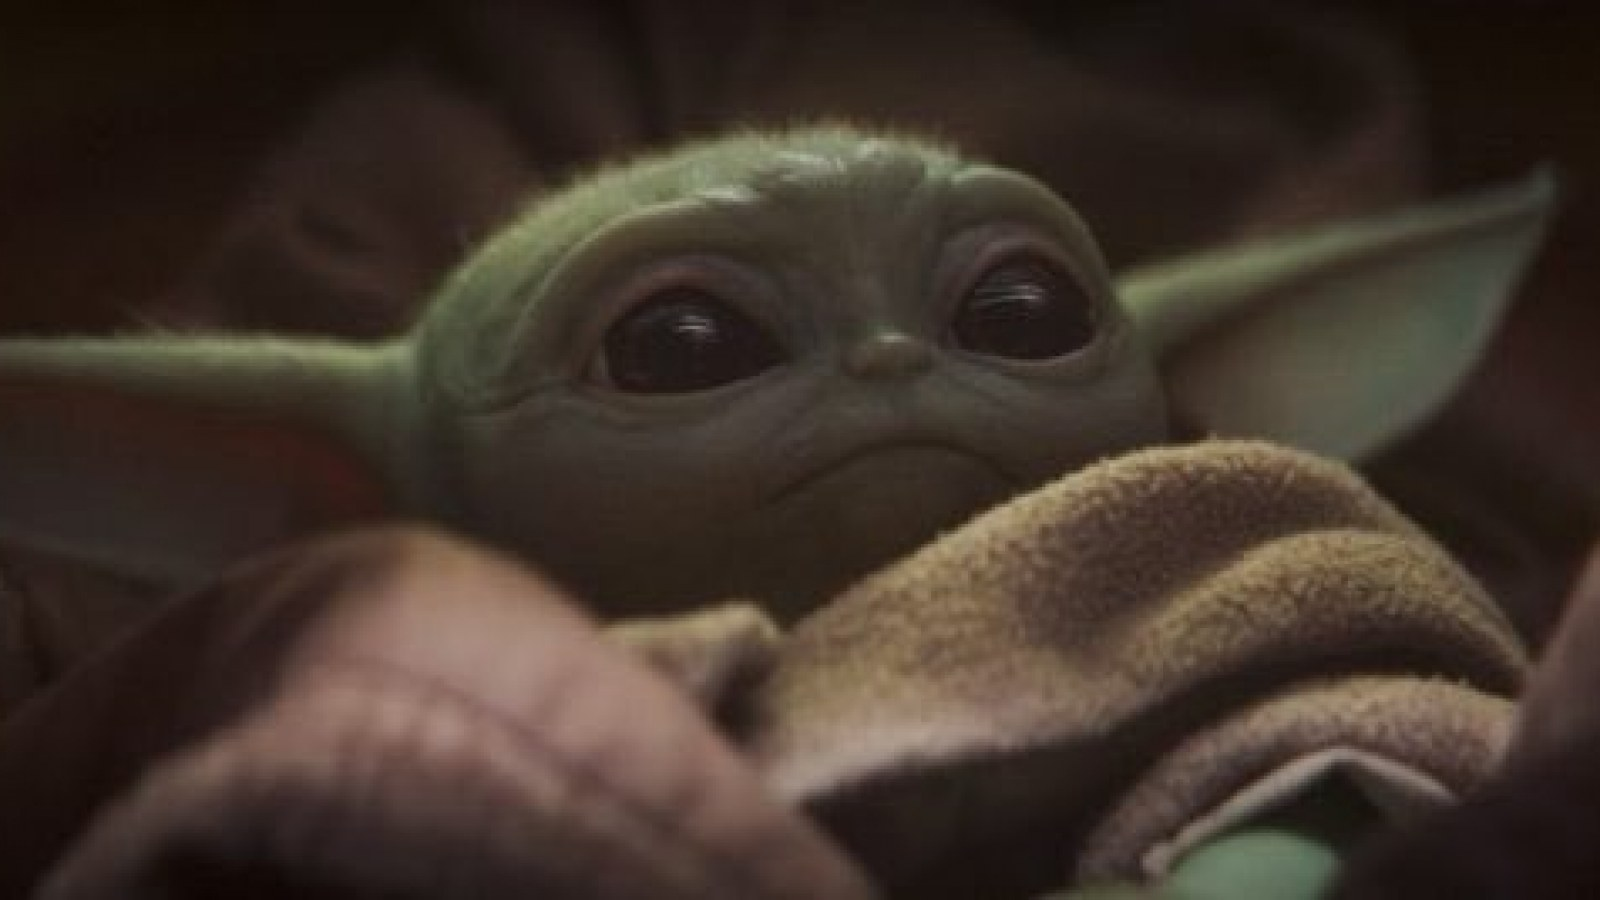 Babyyoda Trends As The Mandalorian Viewers Fall In Love With Disney Plus Series Character